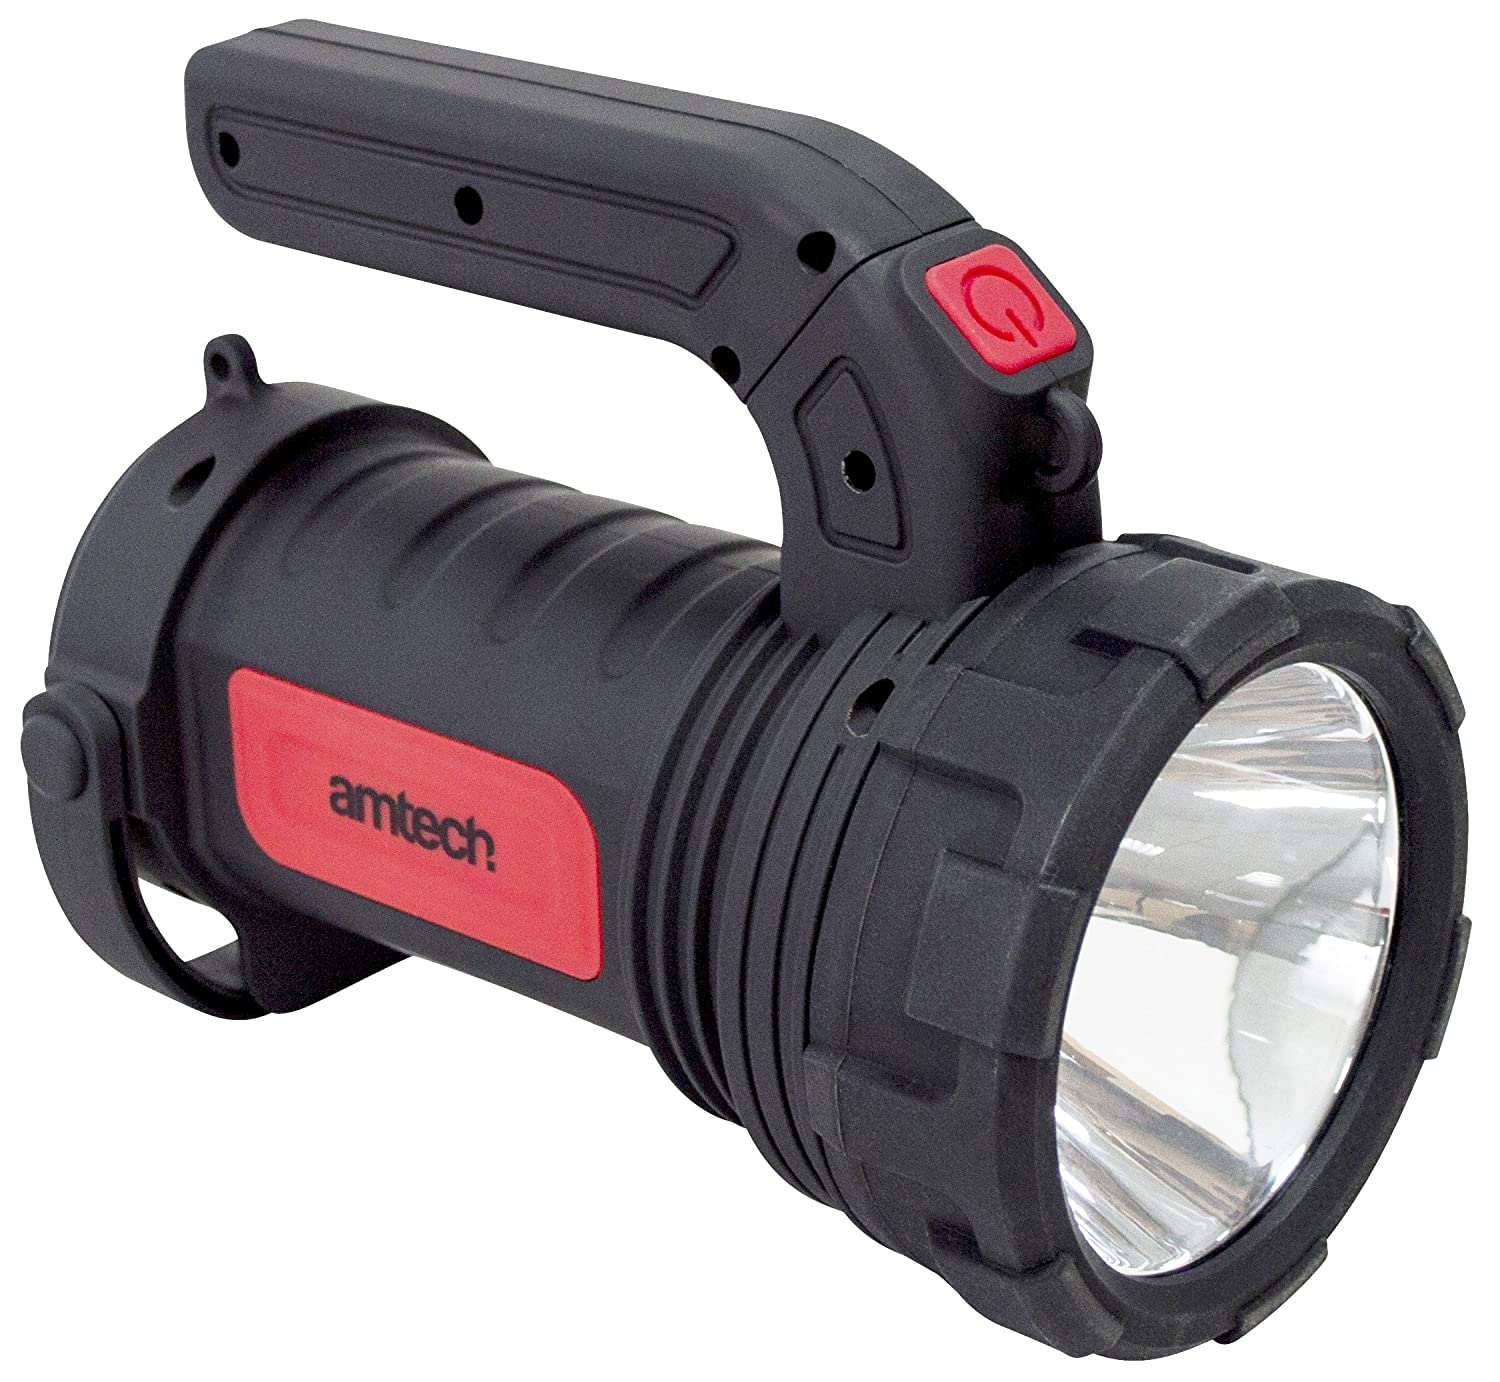 Am-Tech S8177 5W Torch /& 12 SMD LED WORKLIGHT